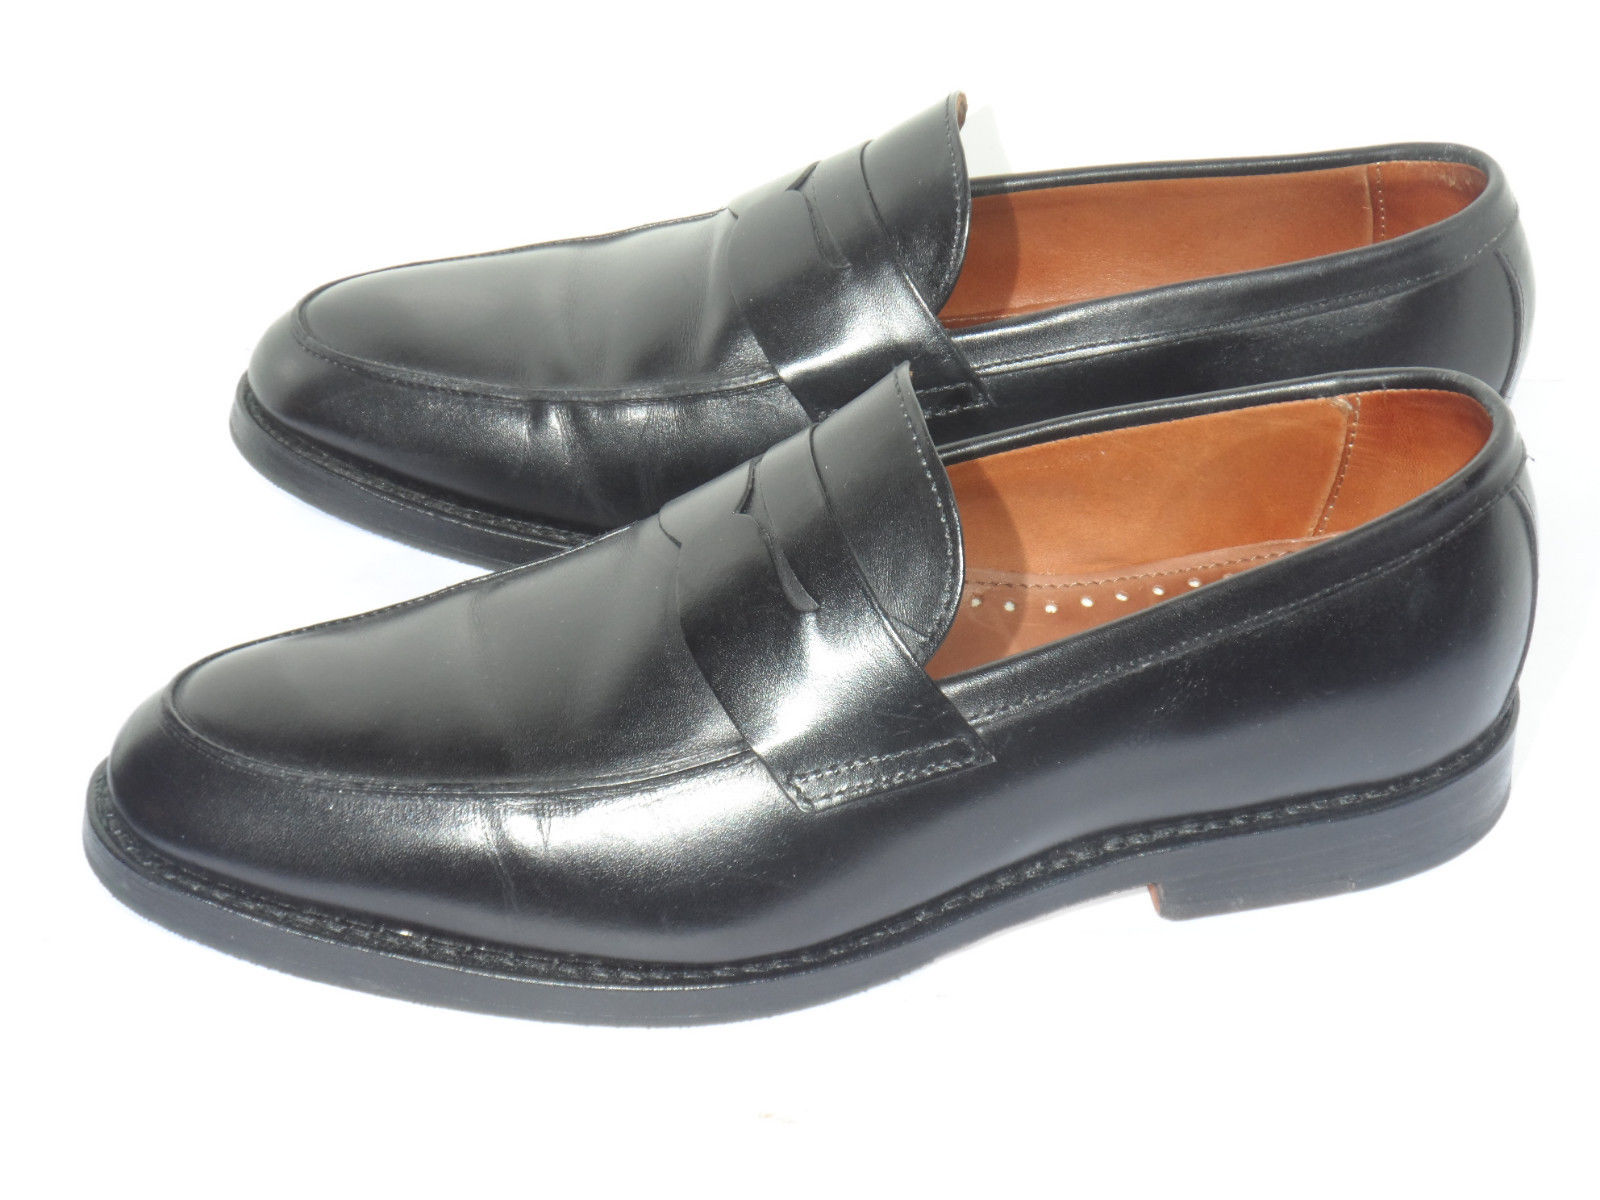 c04bc4d1706 ... Men s Brooks Brothers Black Calfskin Leather Penny Loafers side ...